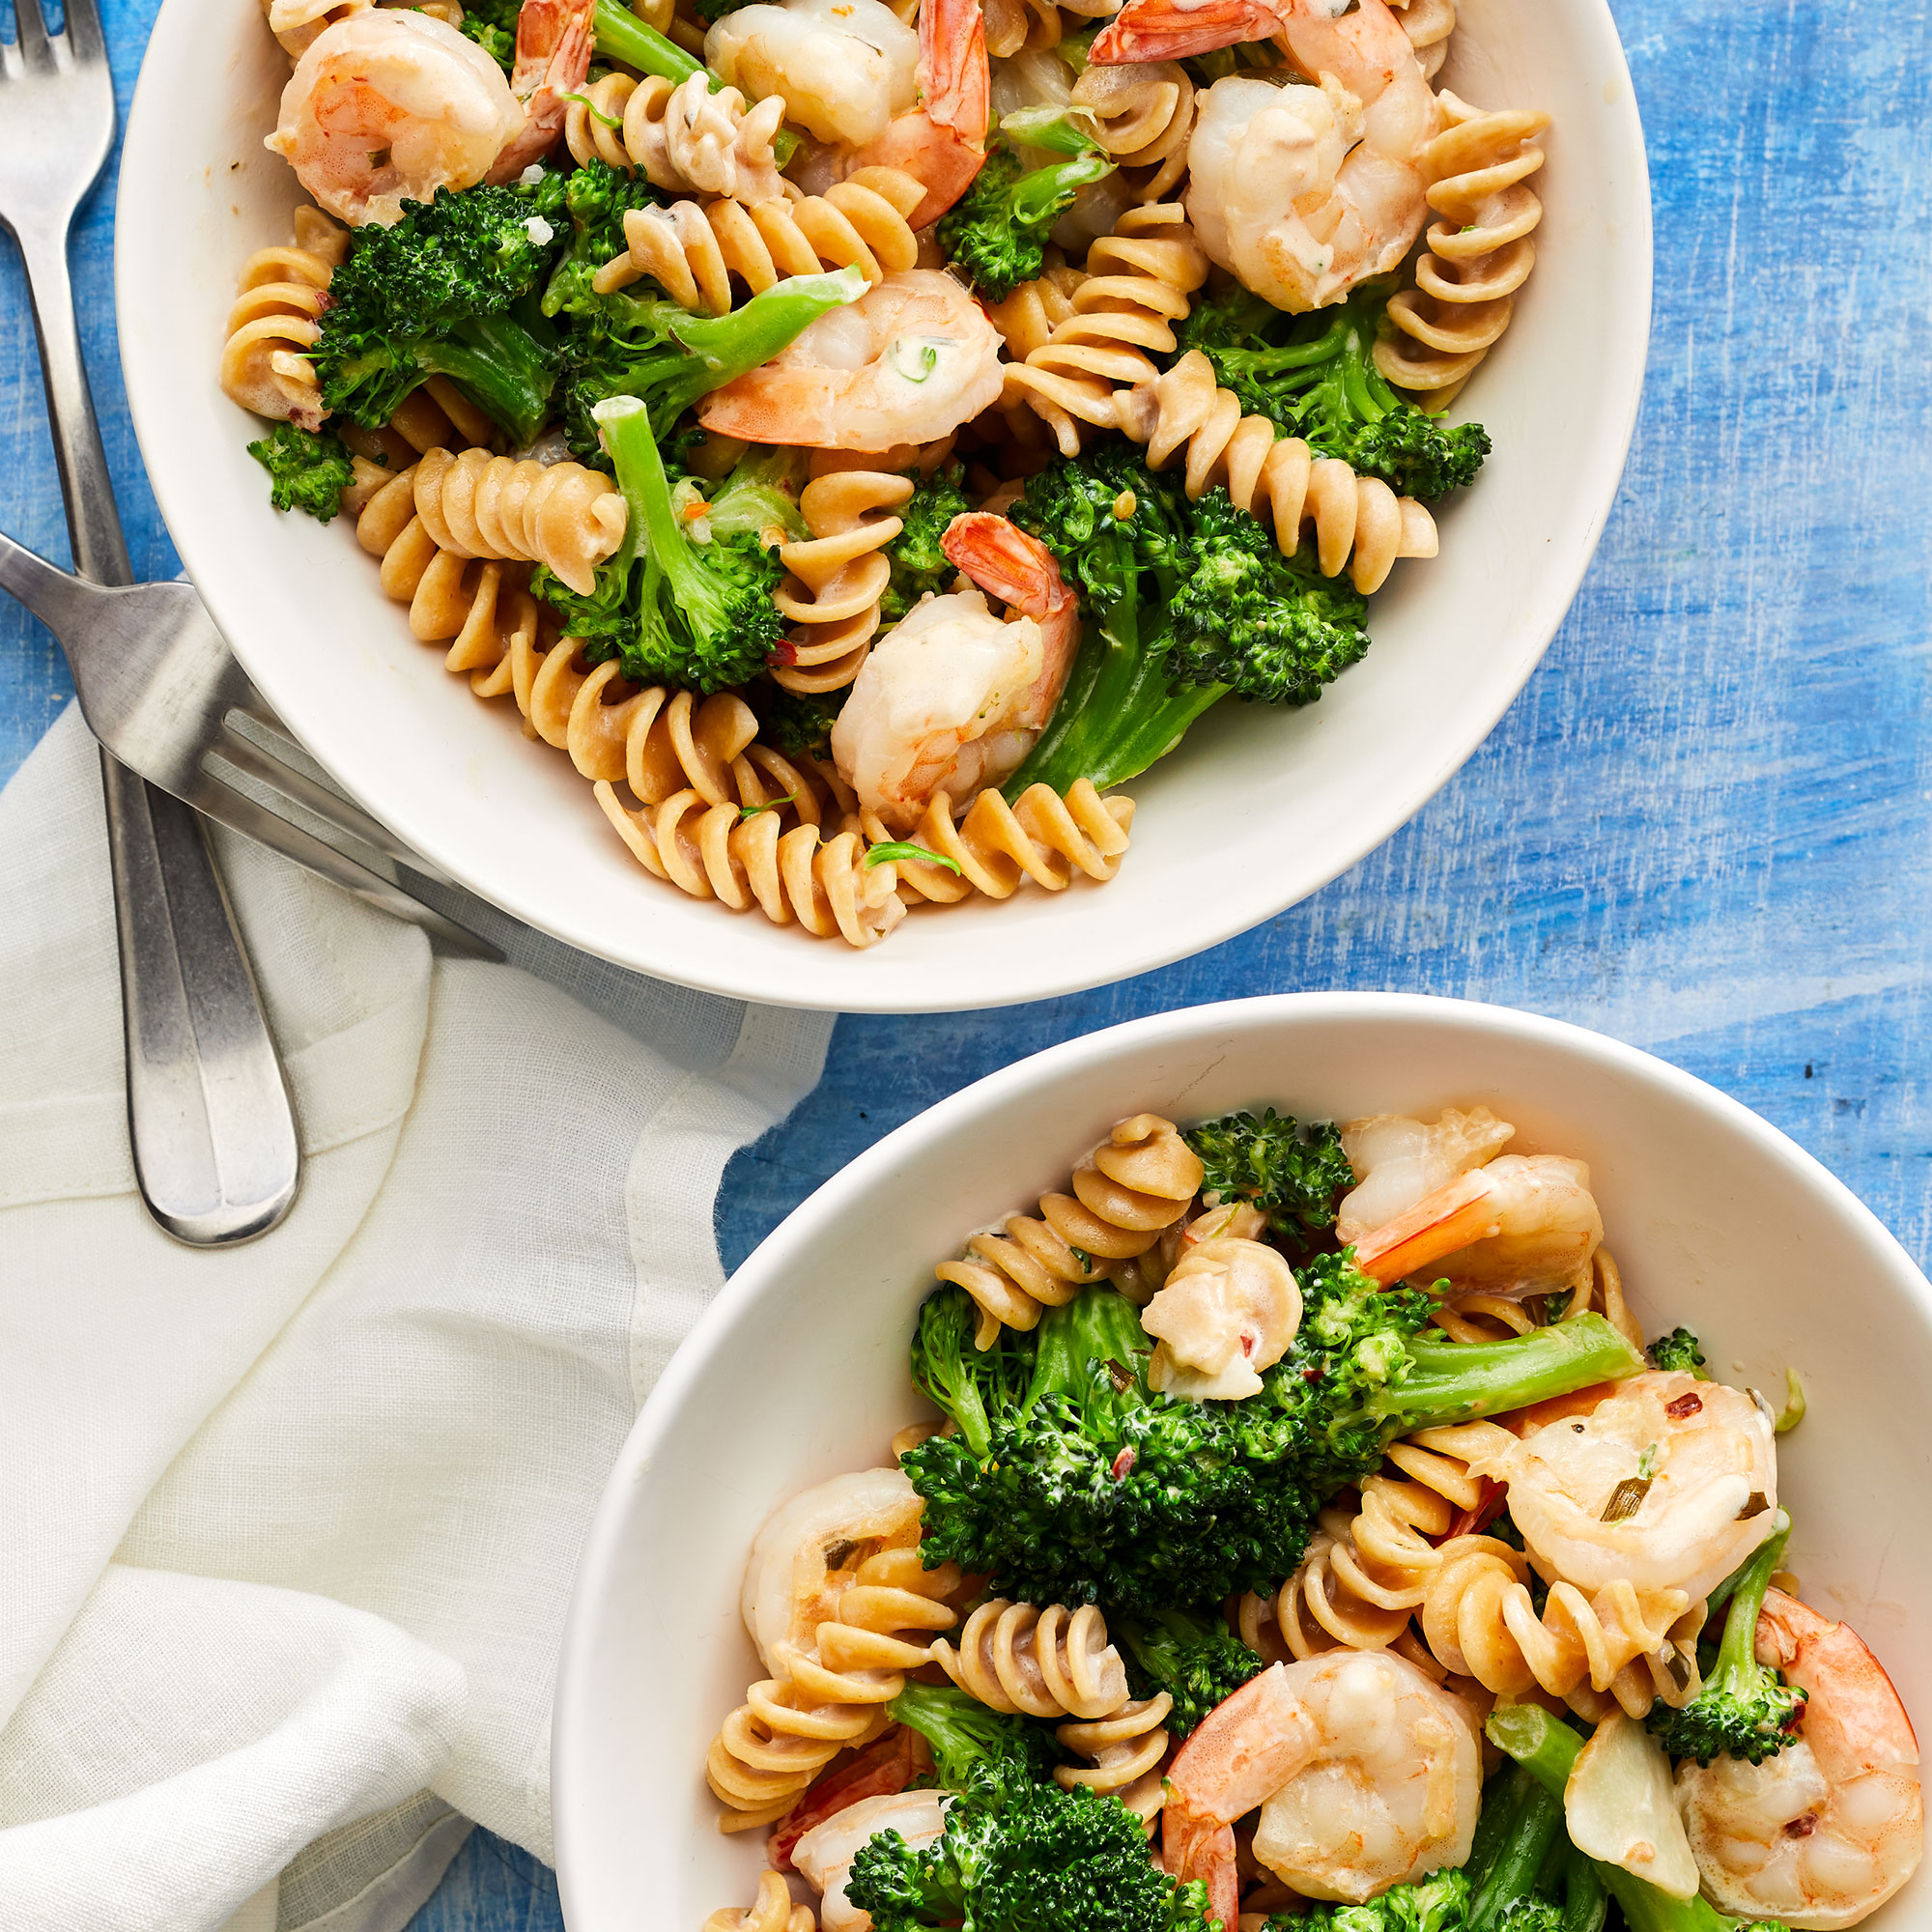 Shrimp & Broccoli Pasta